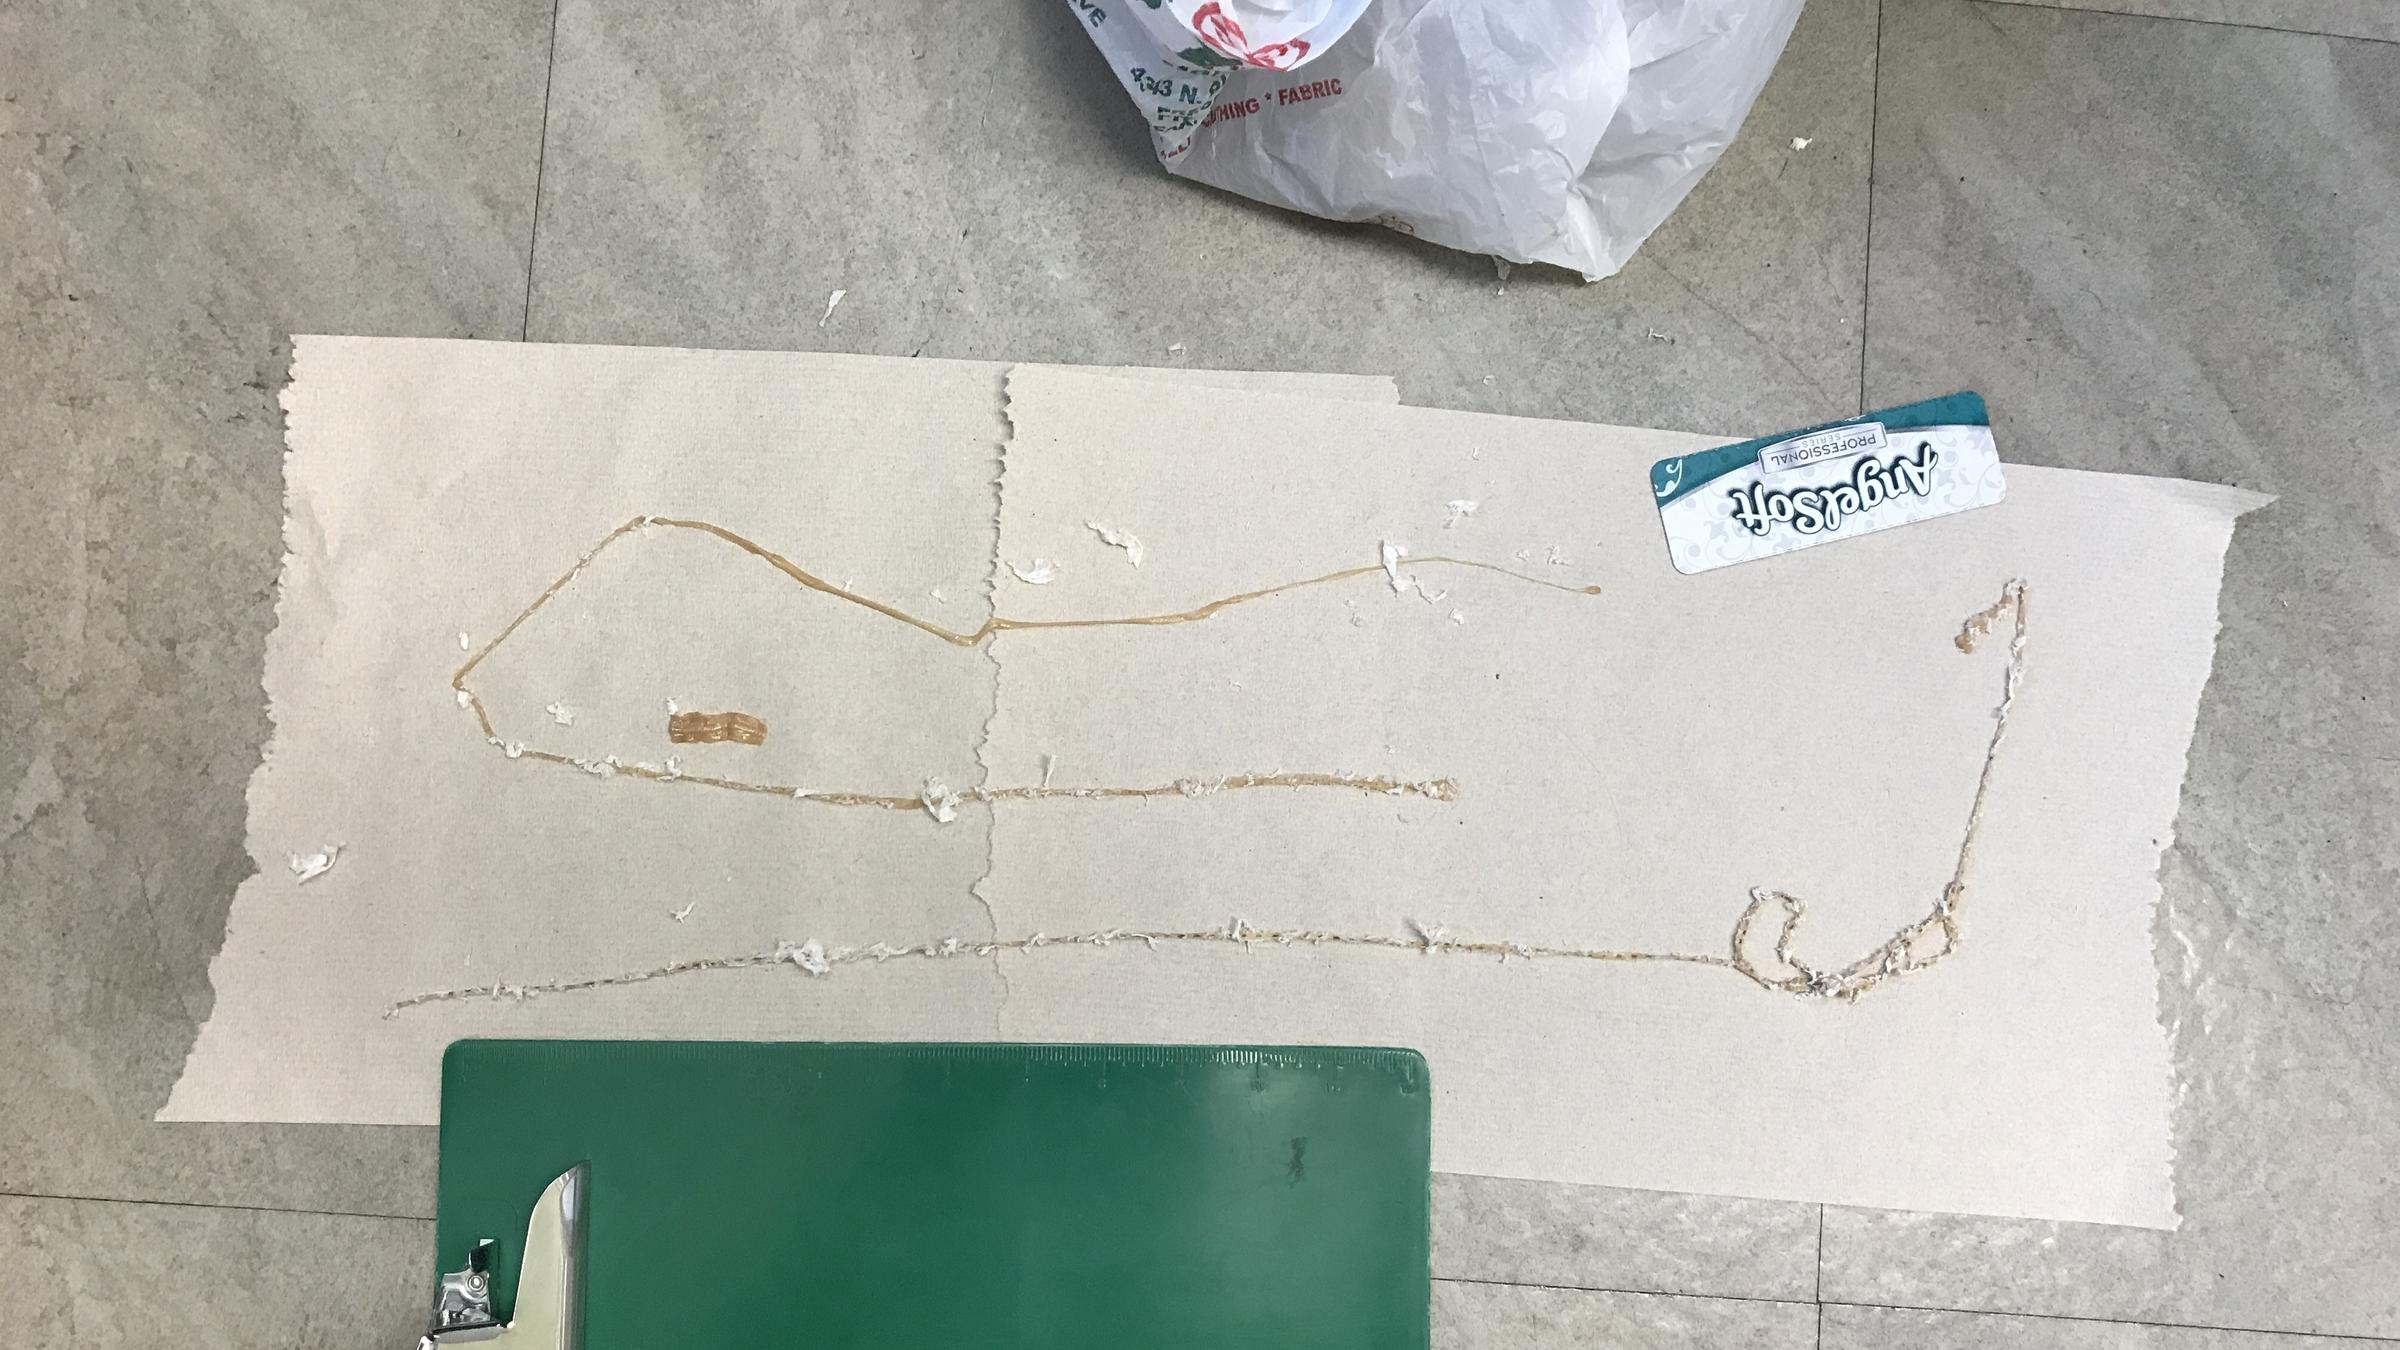 Tapeworm laid out on paper at the hospital